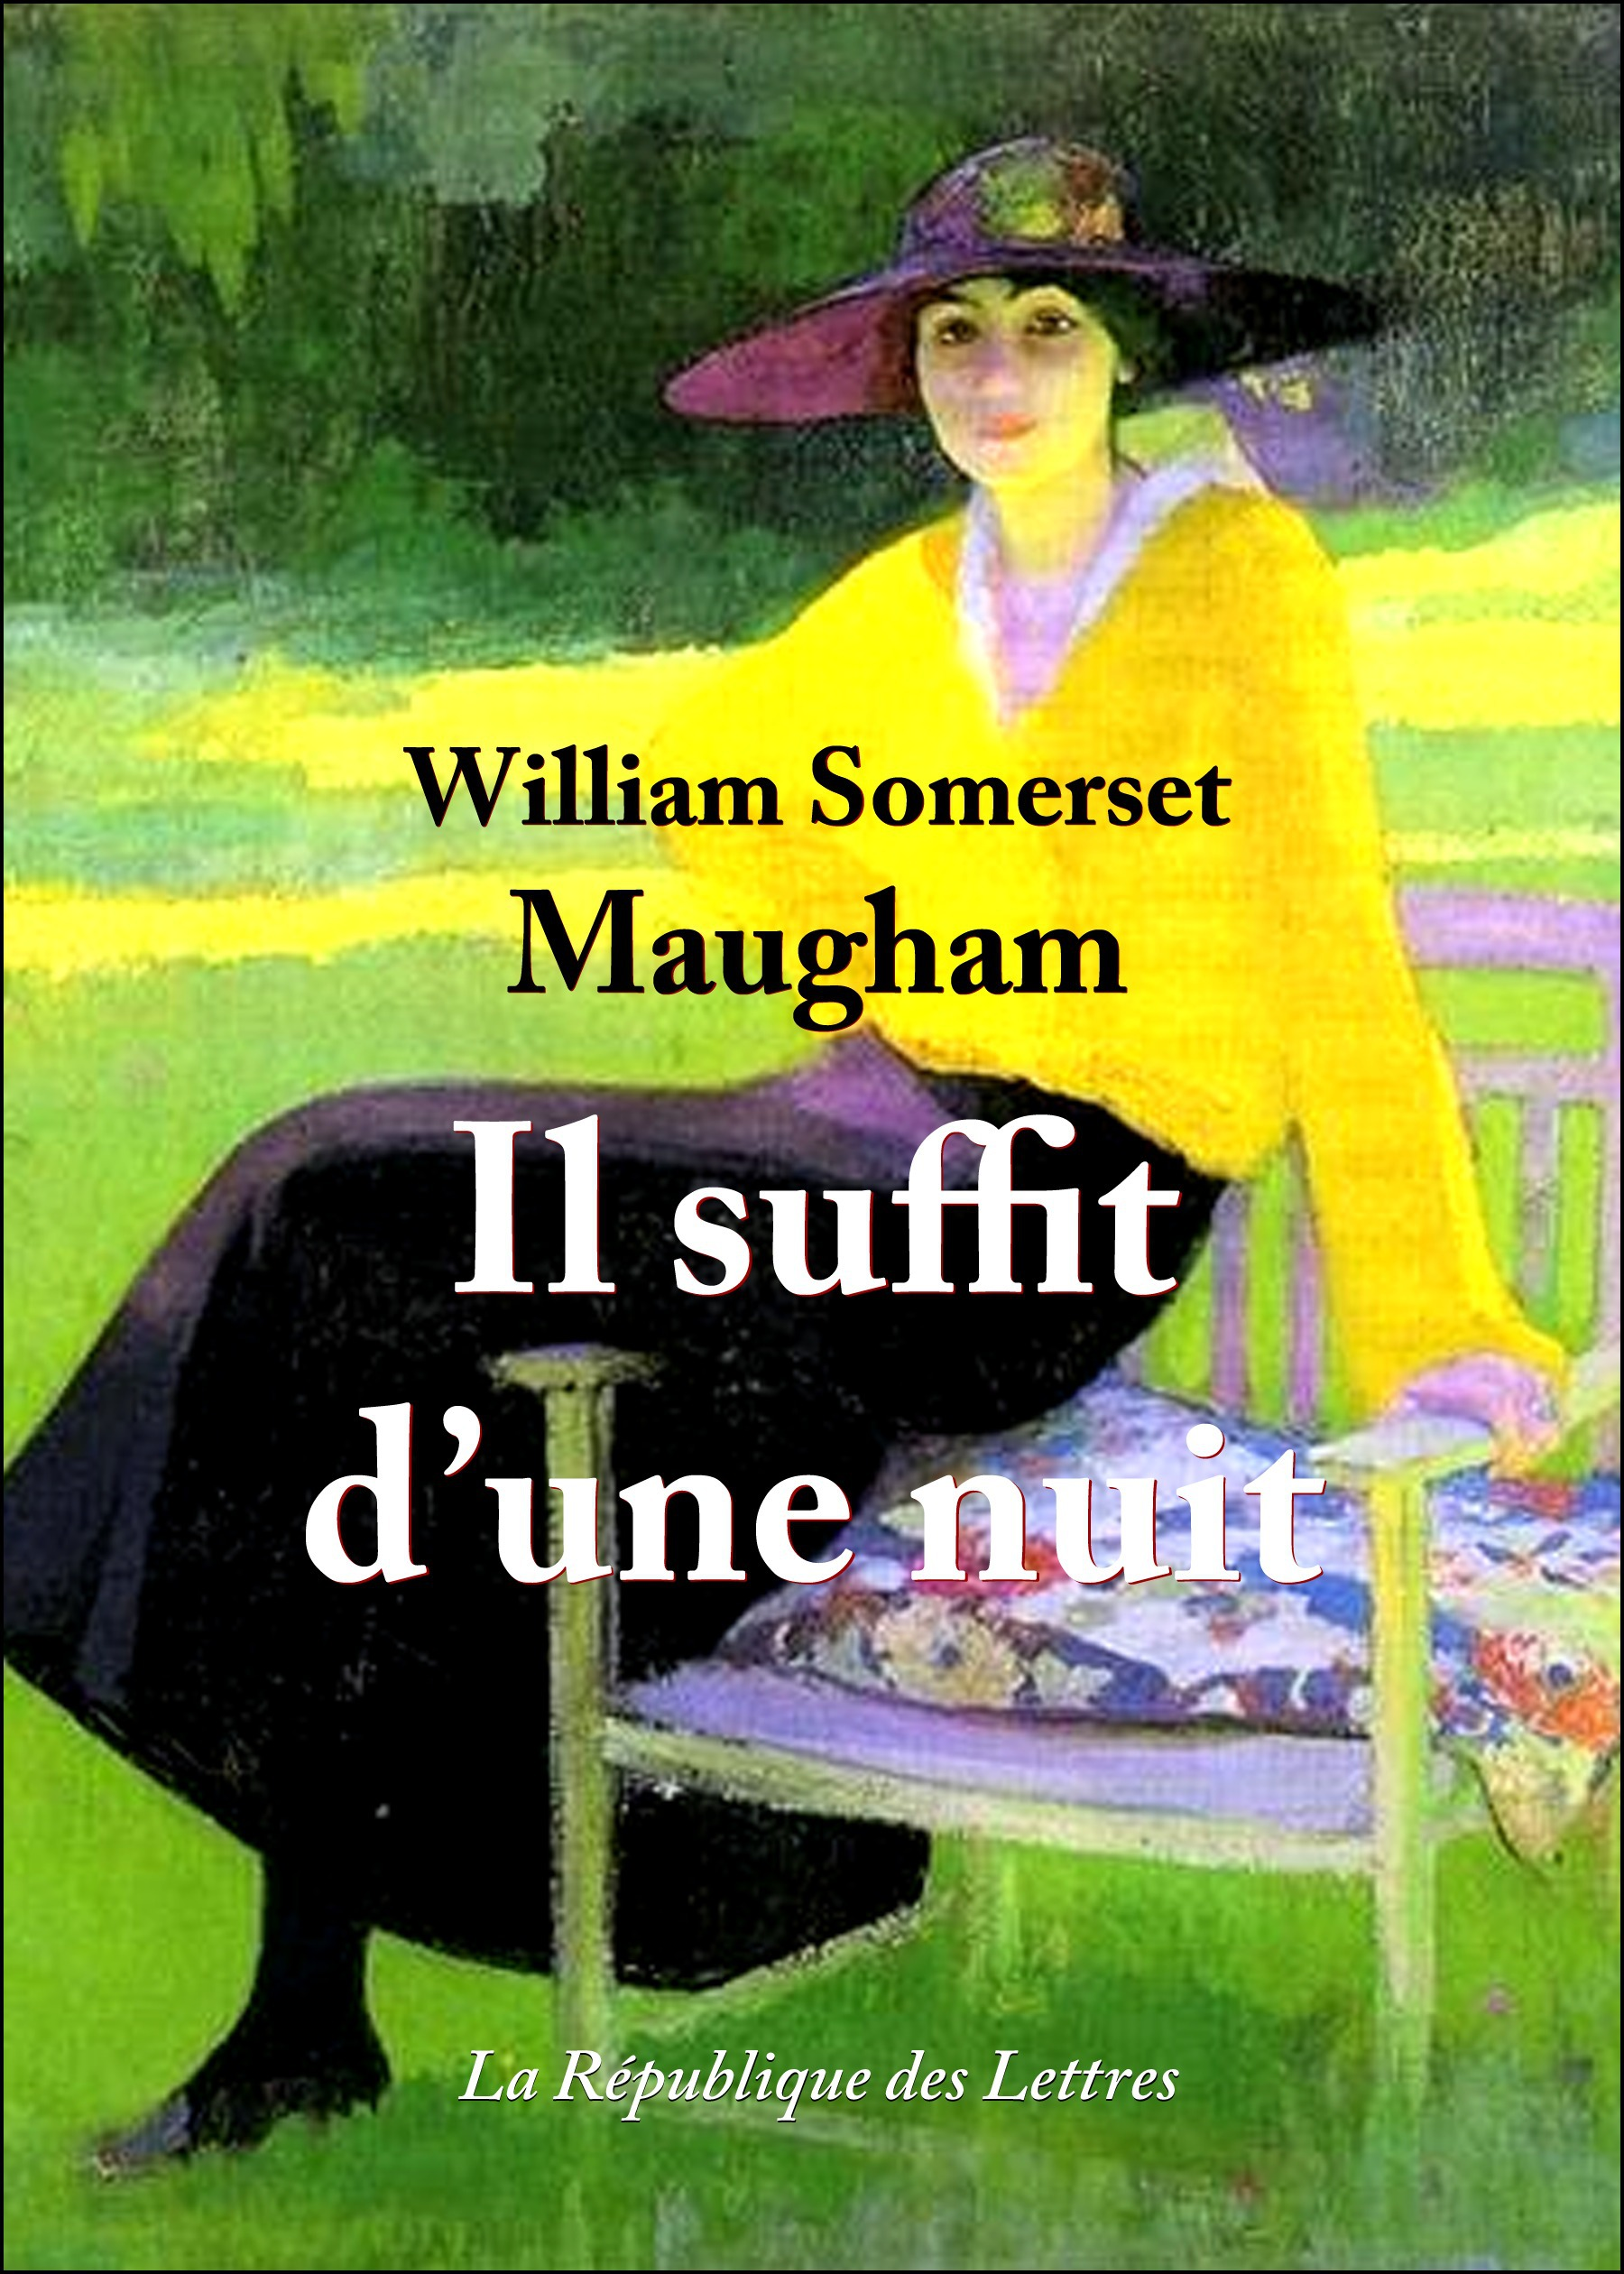 William Somerset Maugham Il suffit d'une nuit